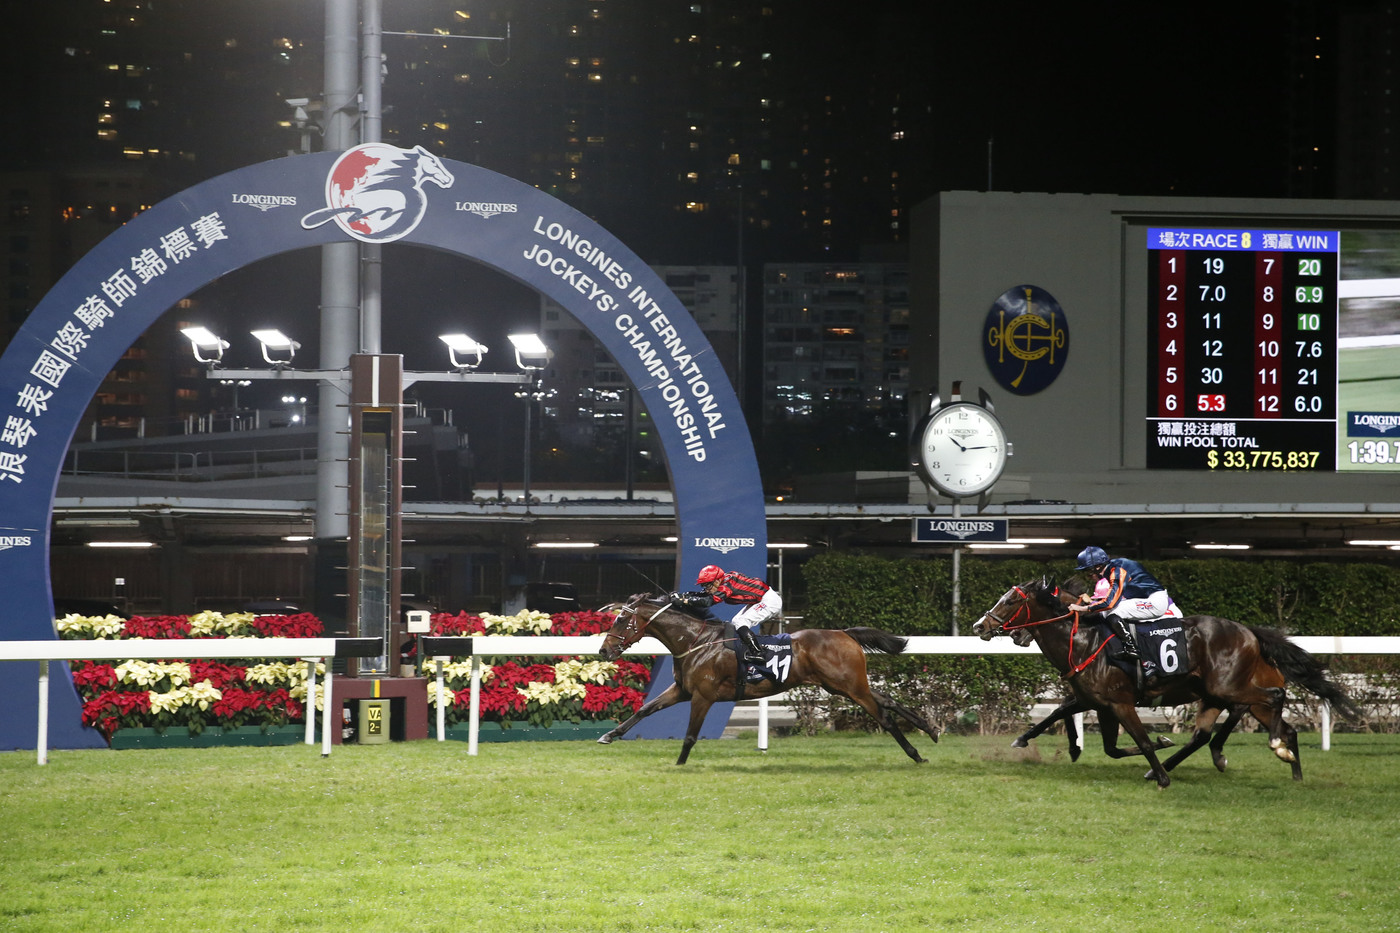 Longines Flat Racing Event: Silvestre de Sousa emerges victorious in the Longines International Jockeys' Championship in Hong Kong 4